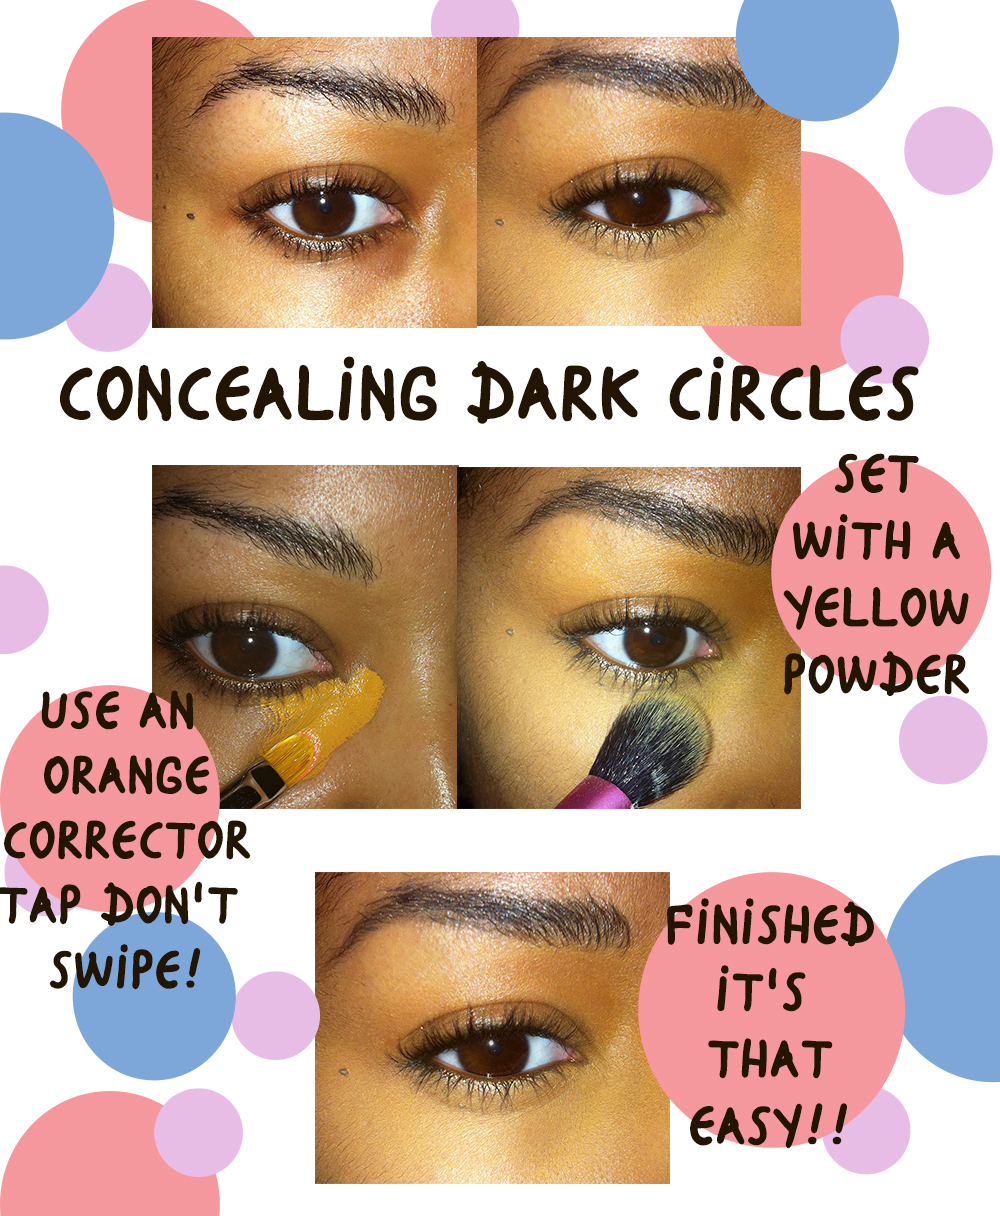 Color correct your dark circles!